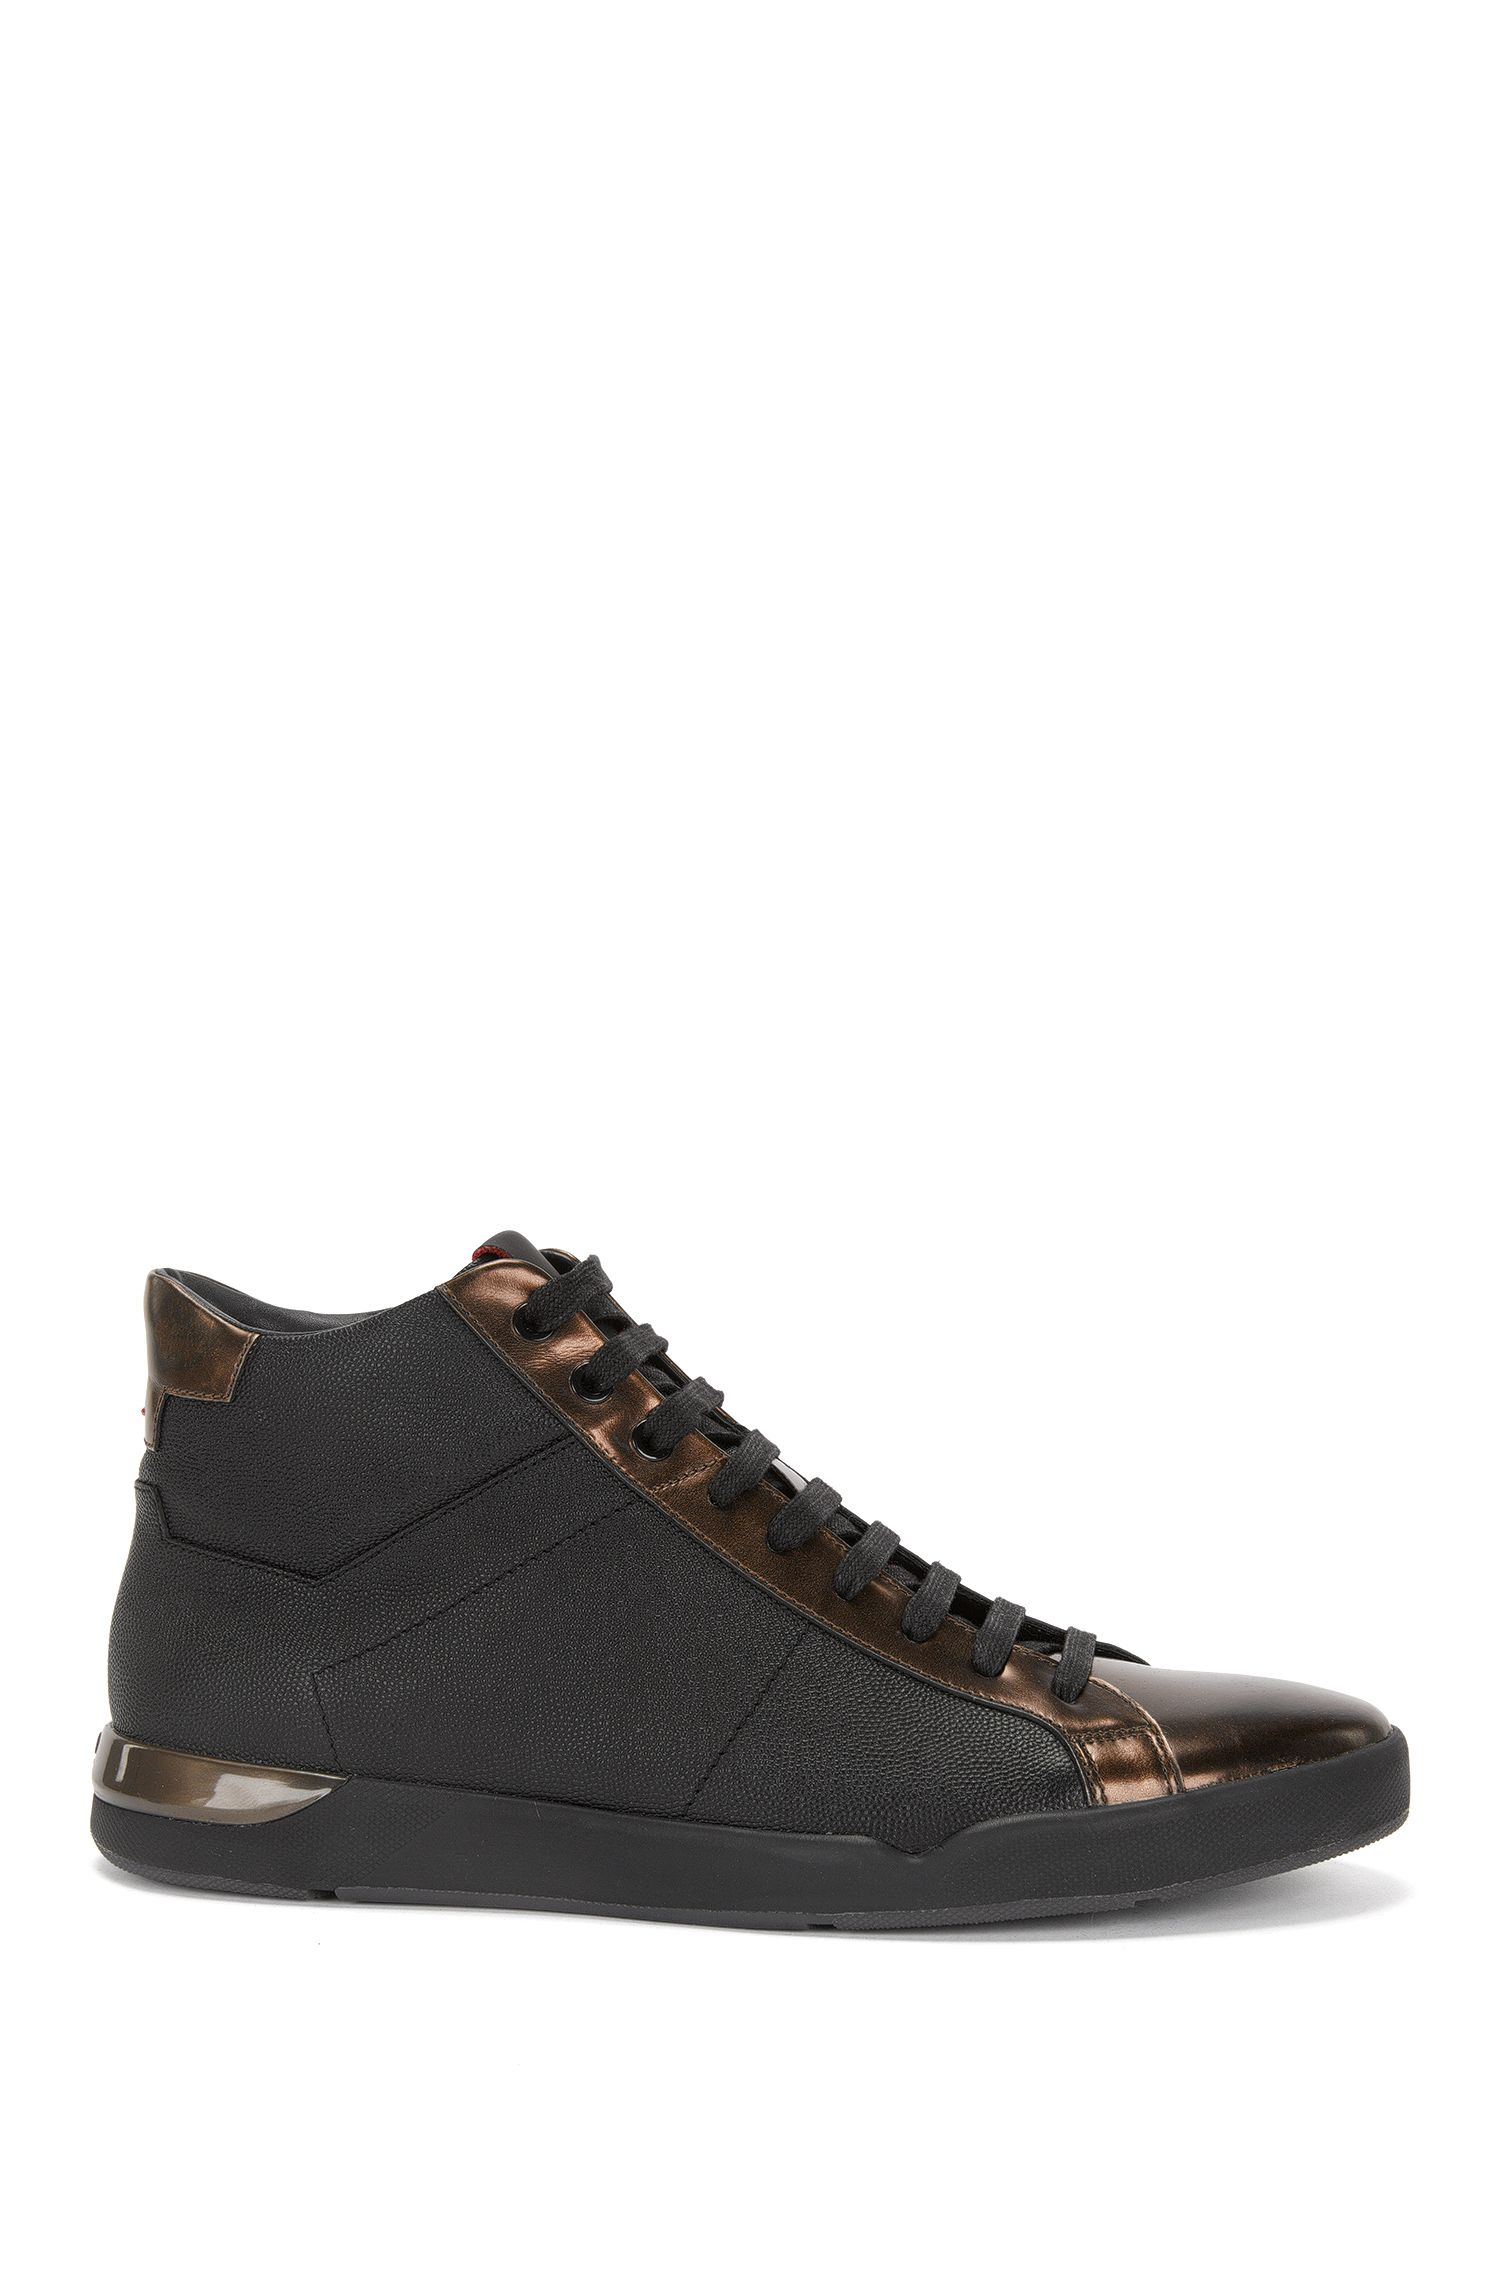 High Top Sneakers aus Leder mit Details in Metallic-Optik: 'Fusion_Midc_mtpr'